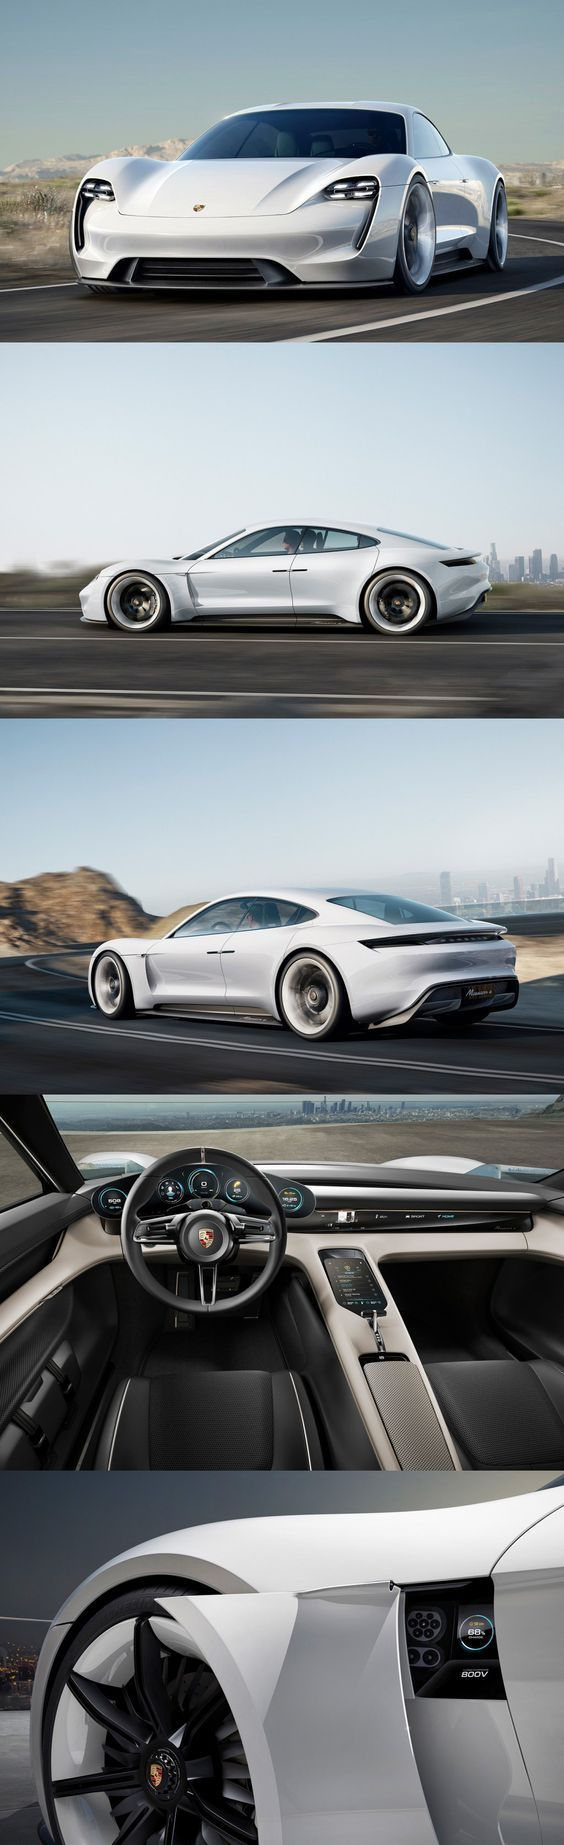 Wow! The Porsche Mission E, a concept car, was revealed last September to impressive reviews. The Mission E model promises more than 300 miles per electric charge and 0 to 60 MPH in less than 4 seconds.